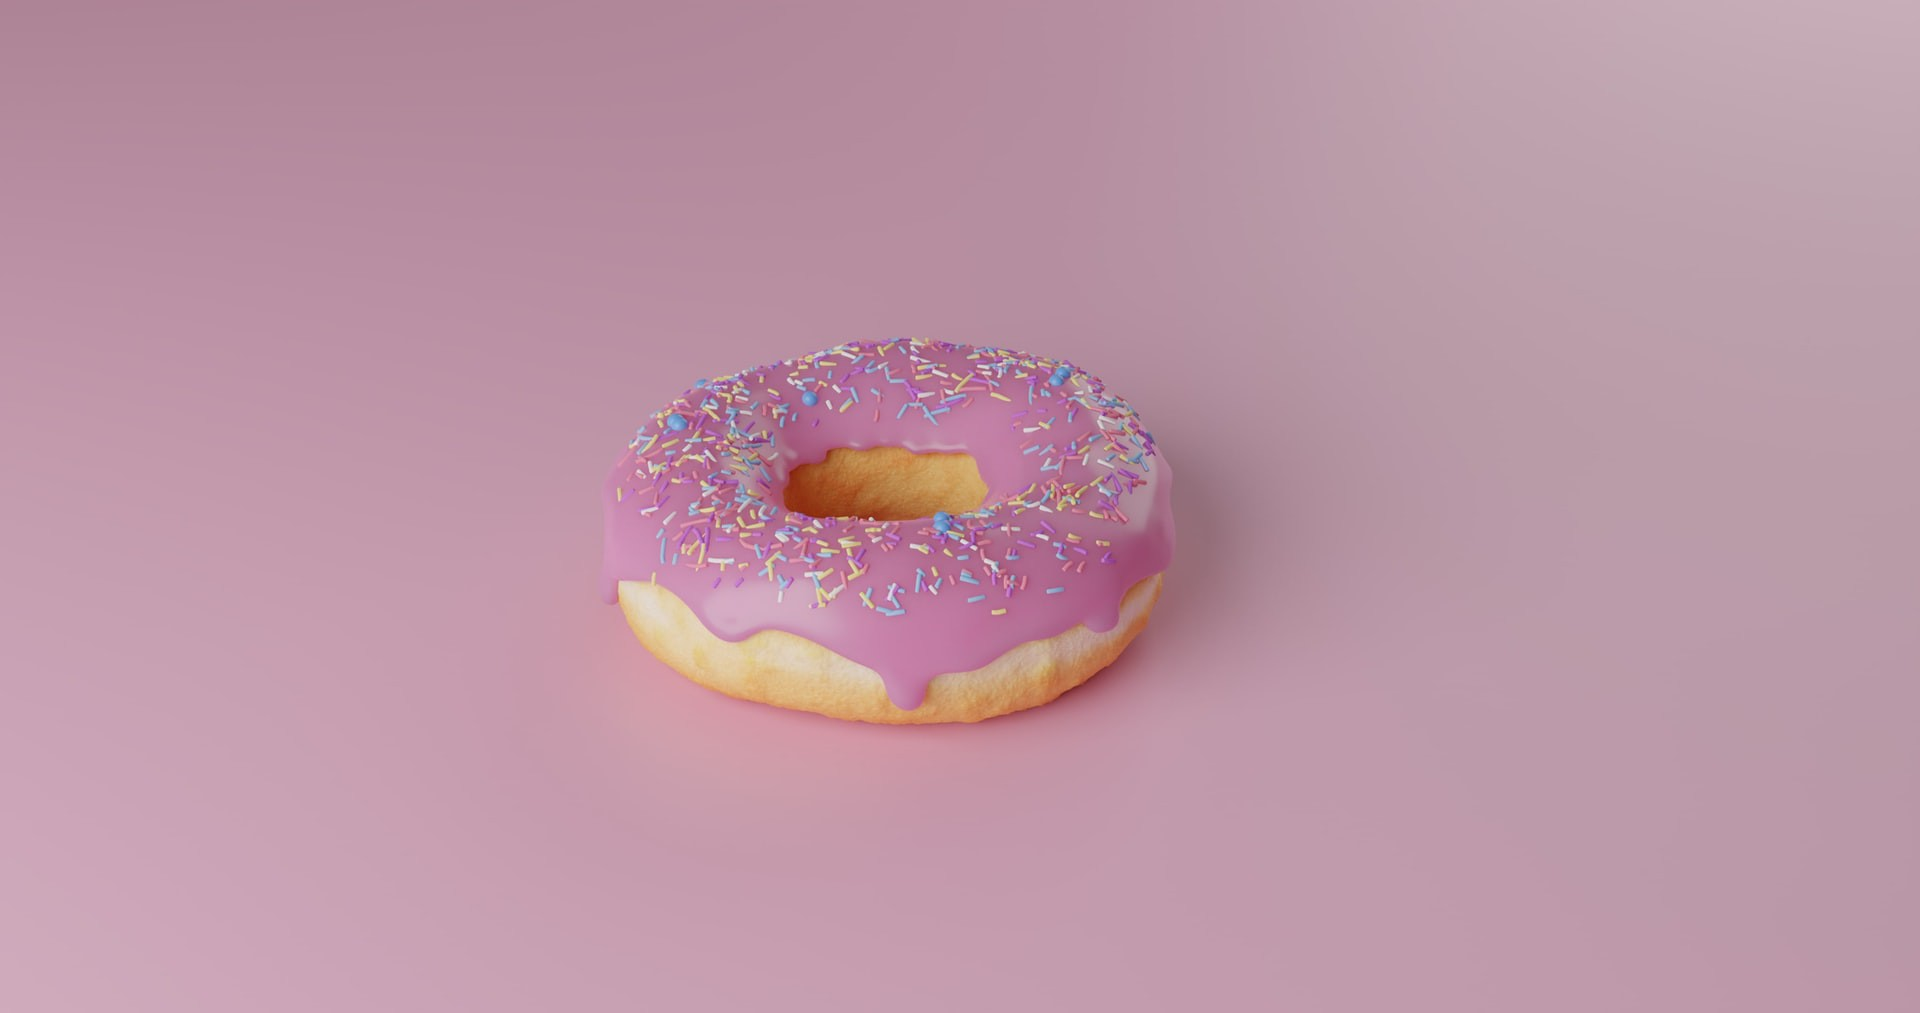 The Donut That Ruined Your Digital Marketing